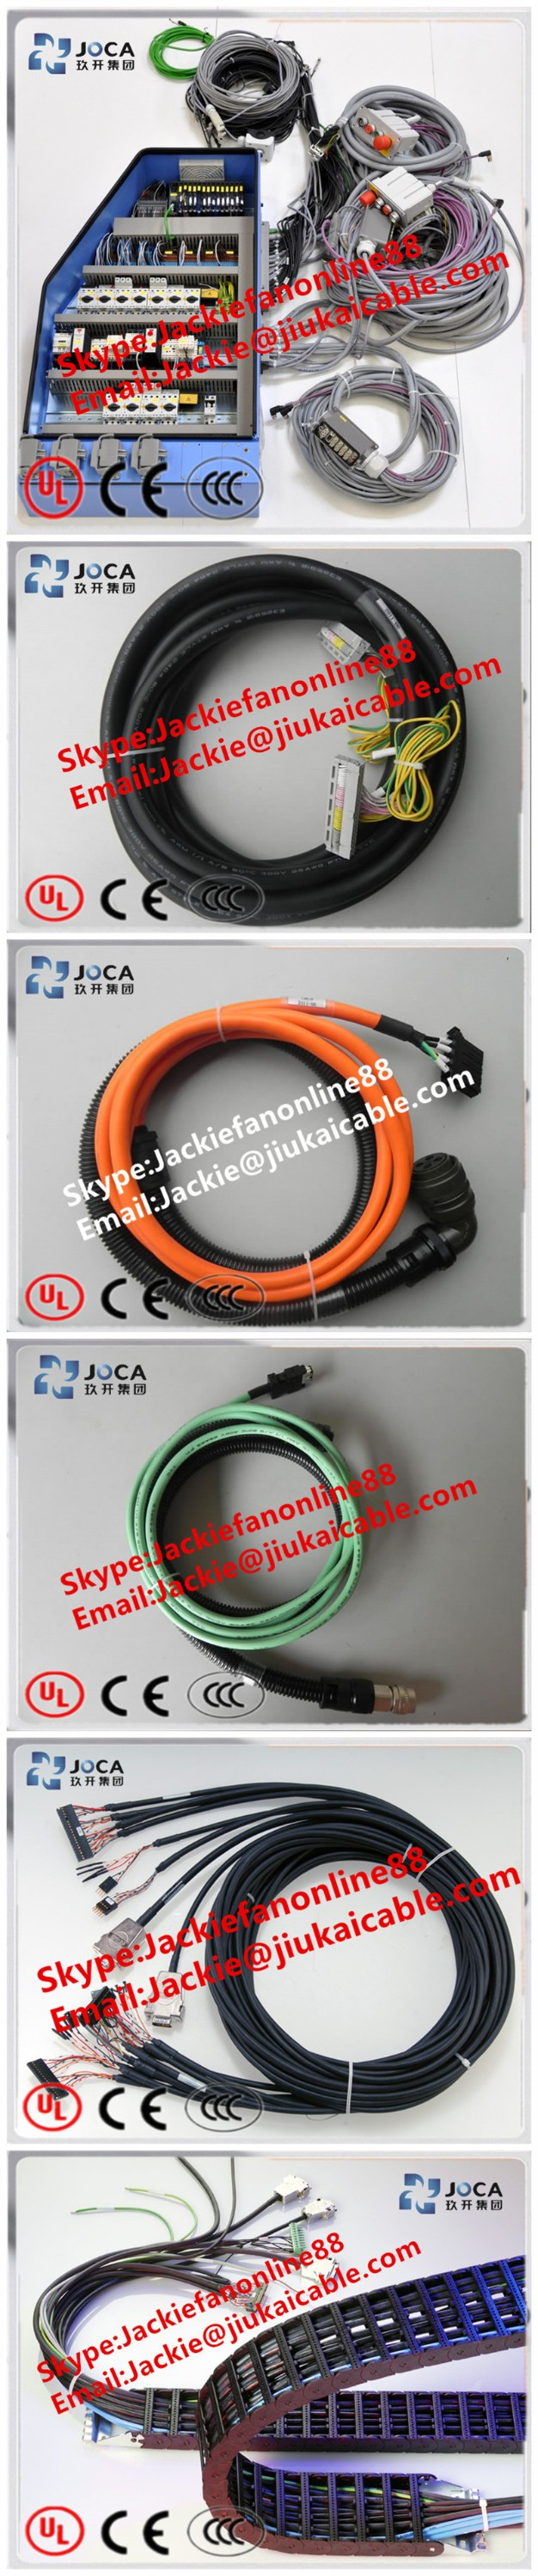 hight resolution of fire resistance cable 4 sqmm can bus cable j1939 11 sae shielded drain